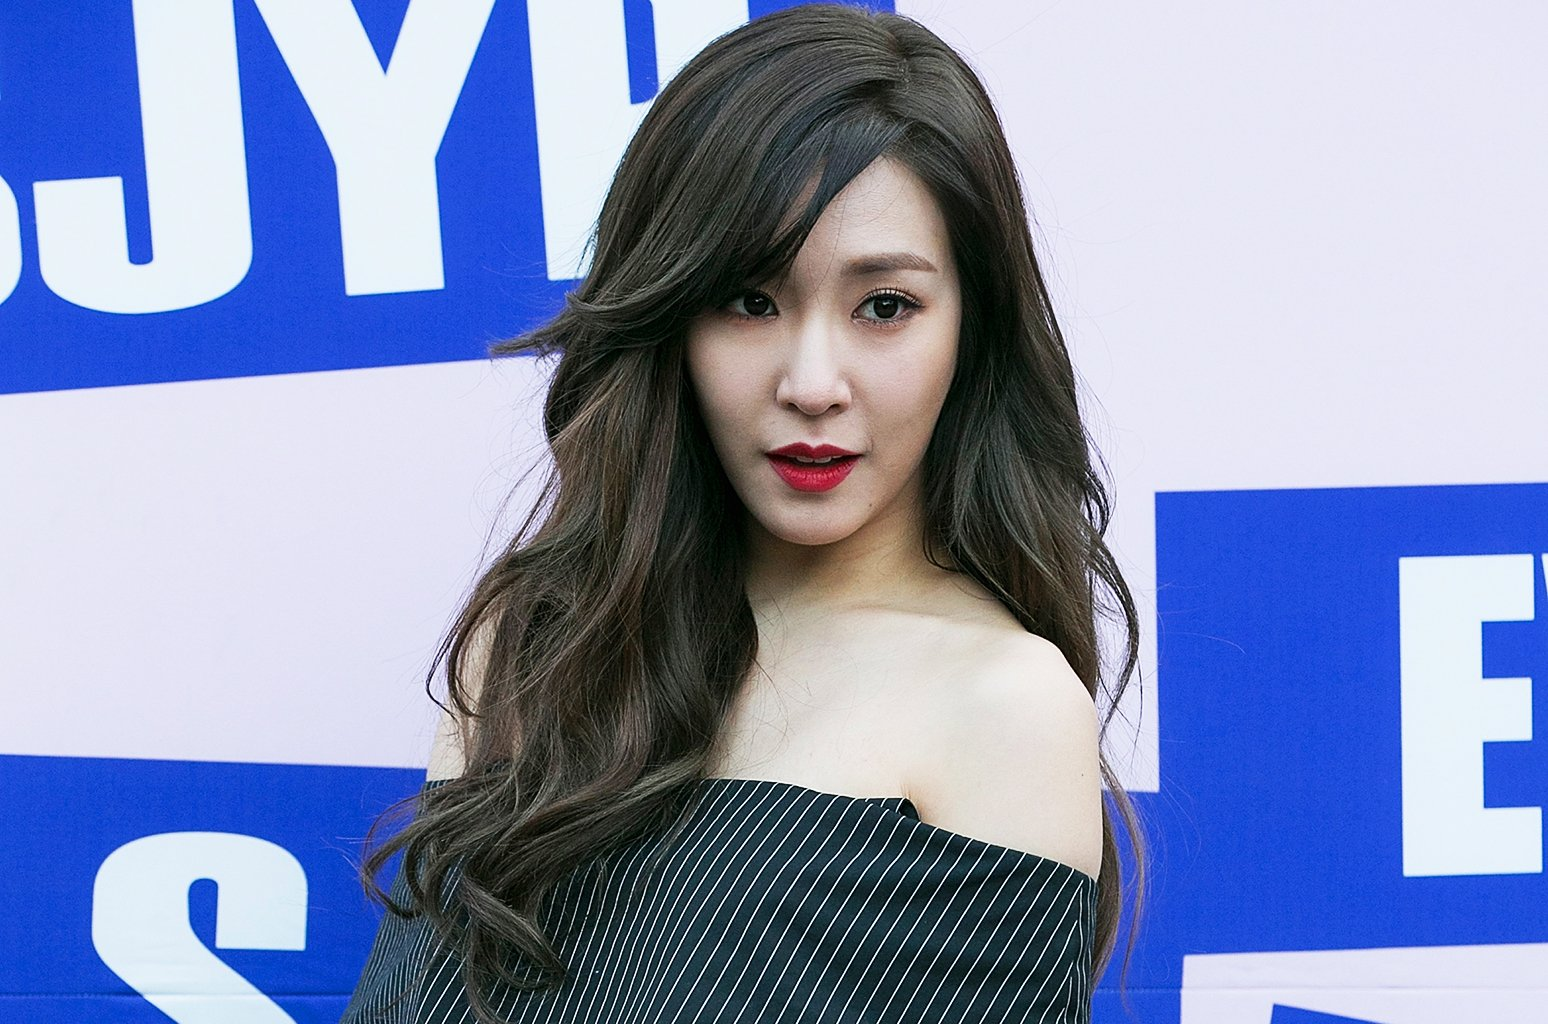 Tiffany Young says 'RuPaul's Drag Race' reminds her of Girls' Generation (video interview) https://t.co/oeqw27eWRw https://t.co/uAnnzl5U5a